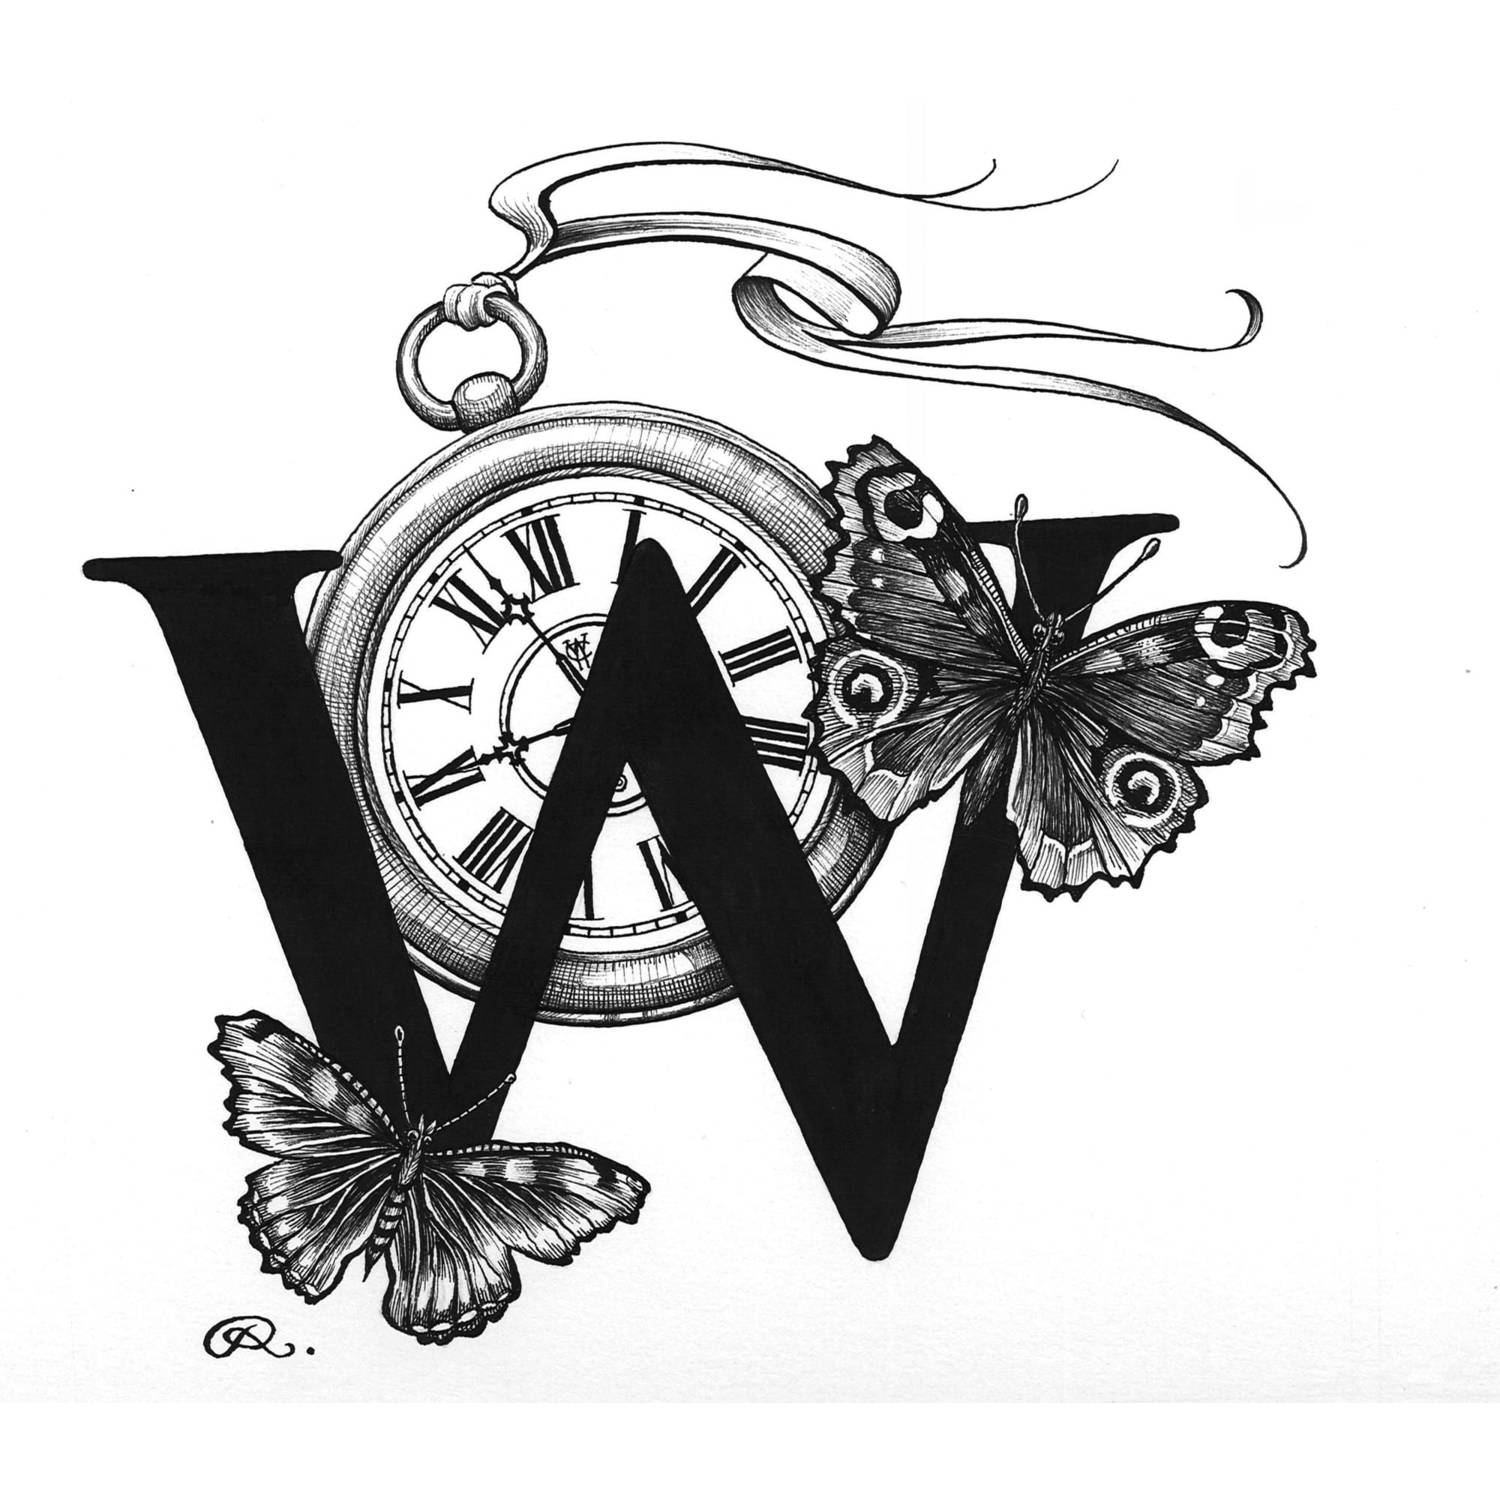 W - Winged Watch Intricate Ink Print-0